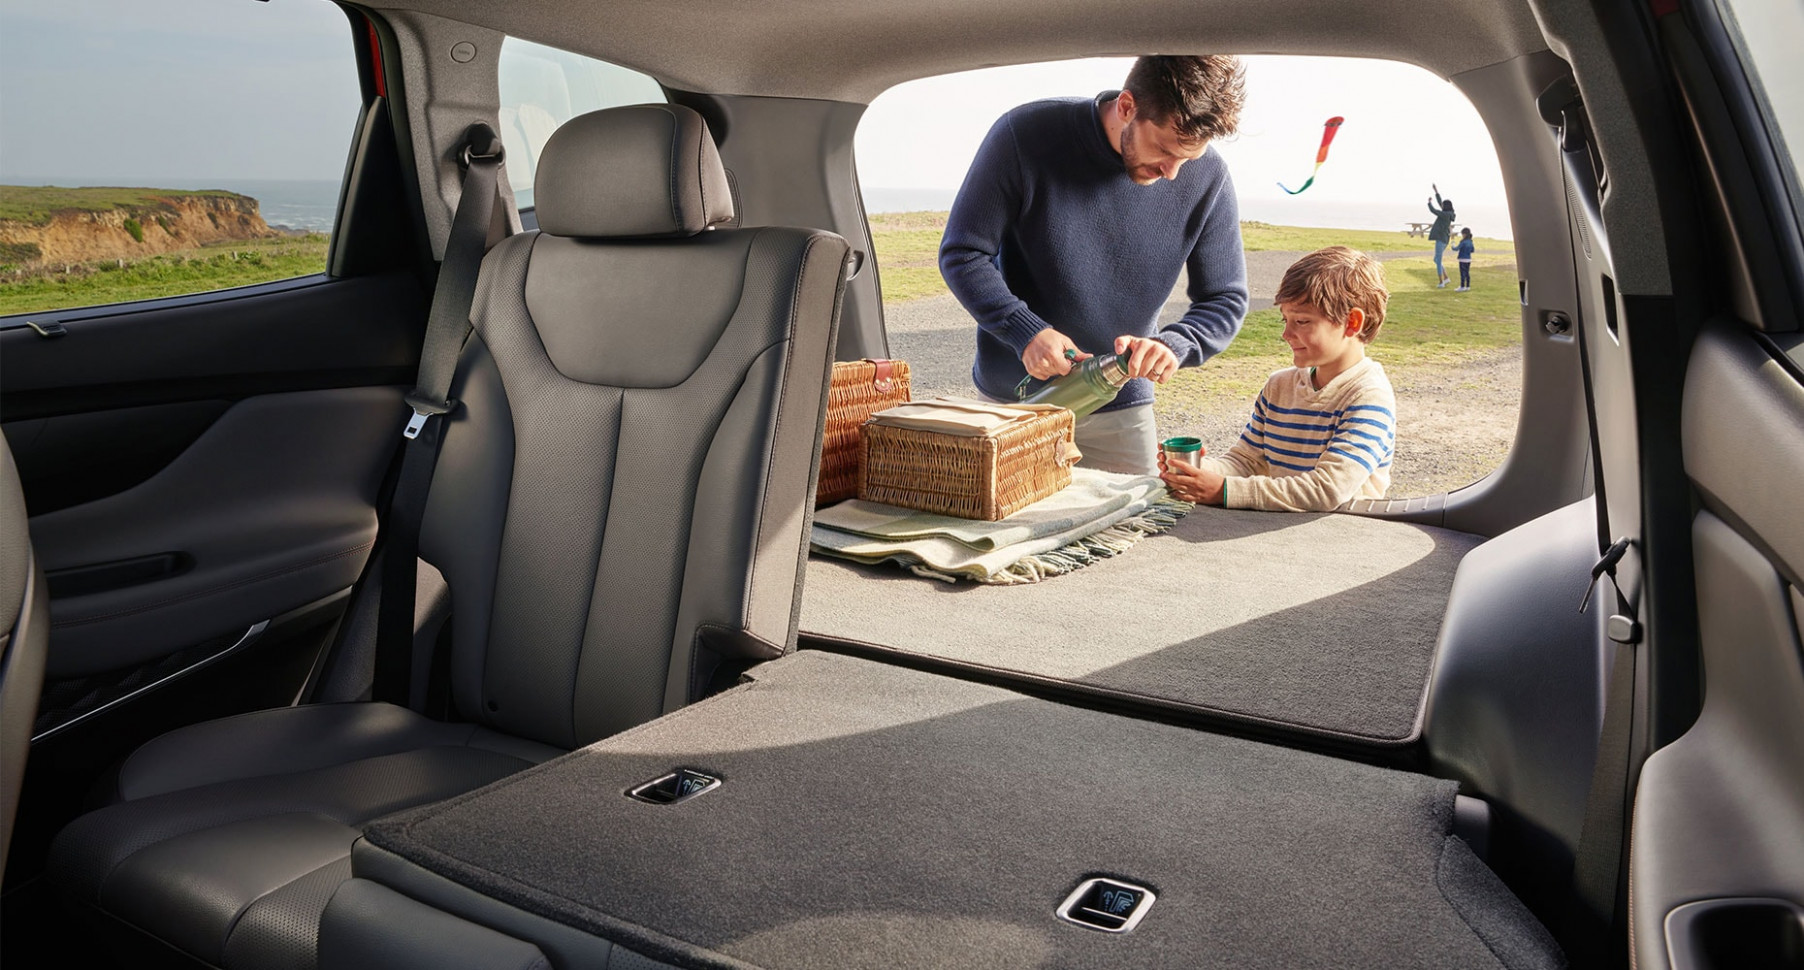 8 Hyundai Santa Fe | Surround yourself with safety | Hyundai Canada - hyundai santa fe 2020 interior